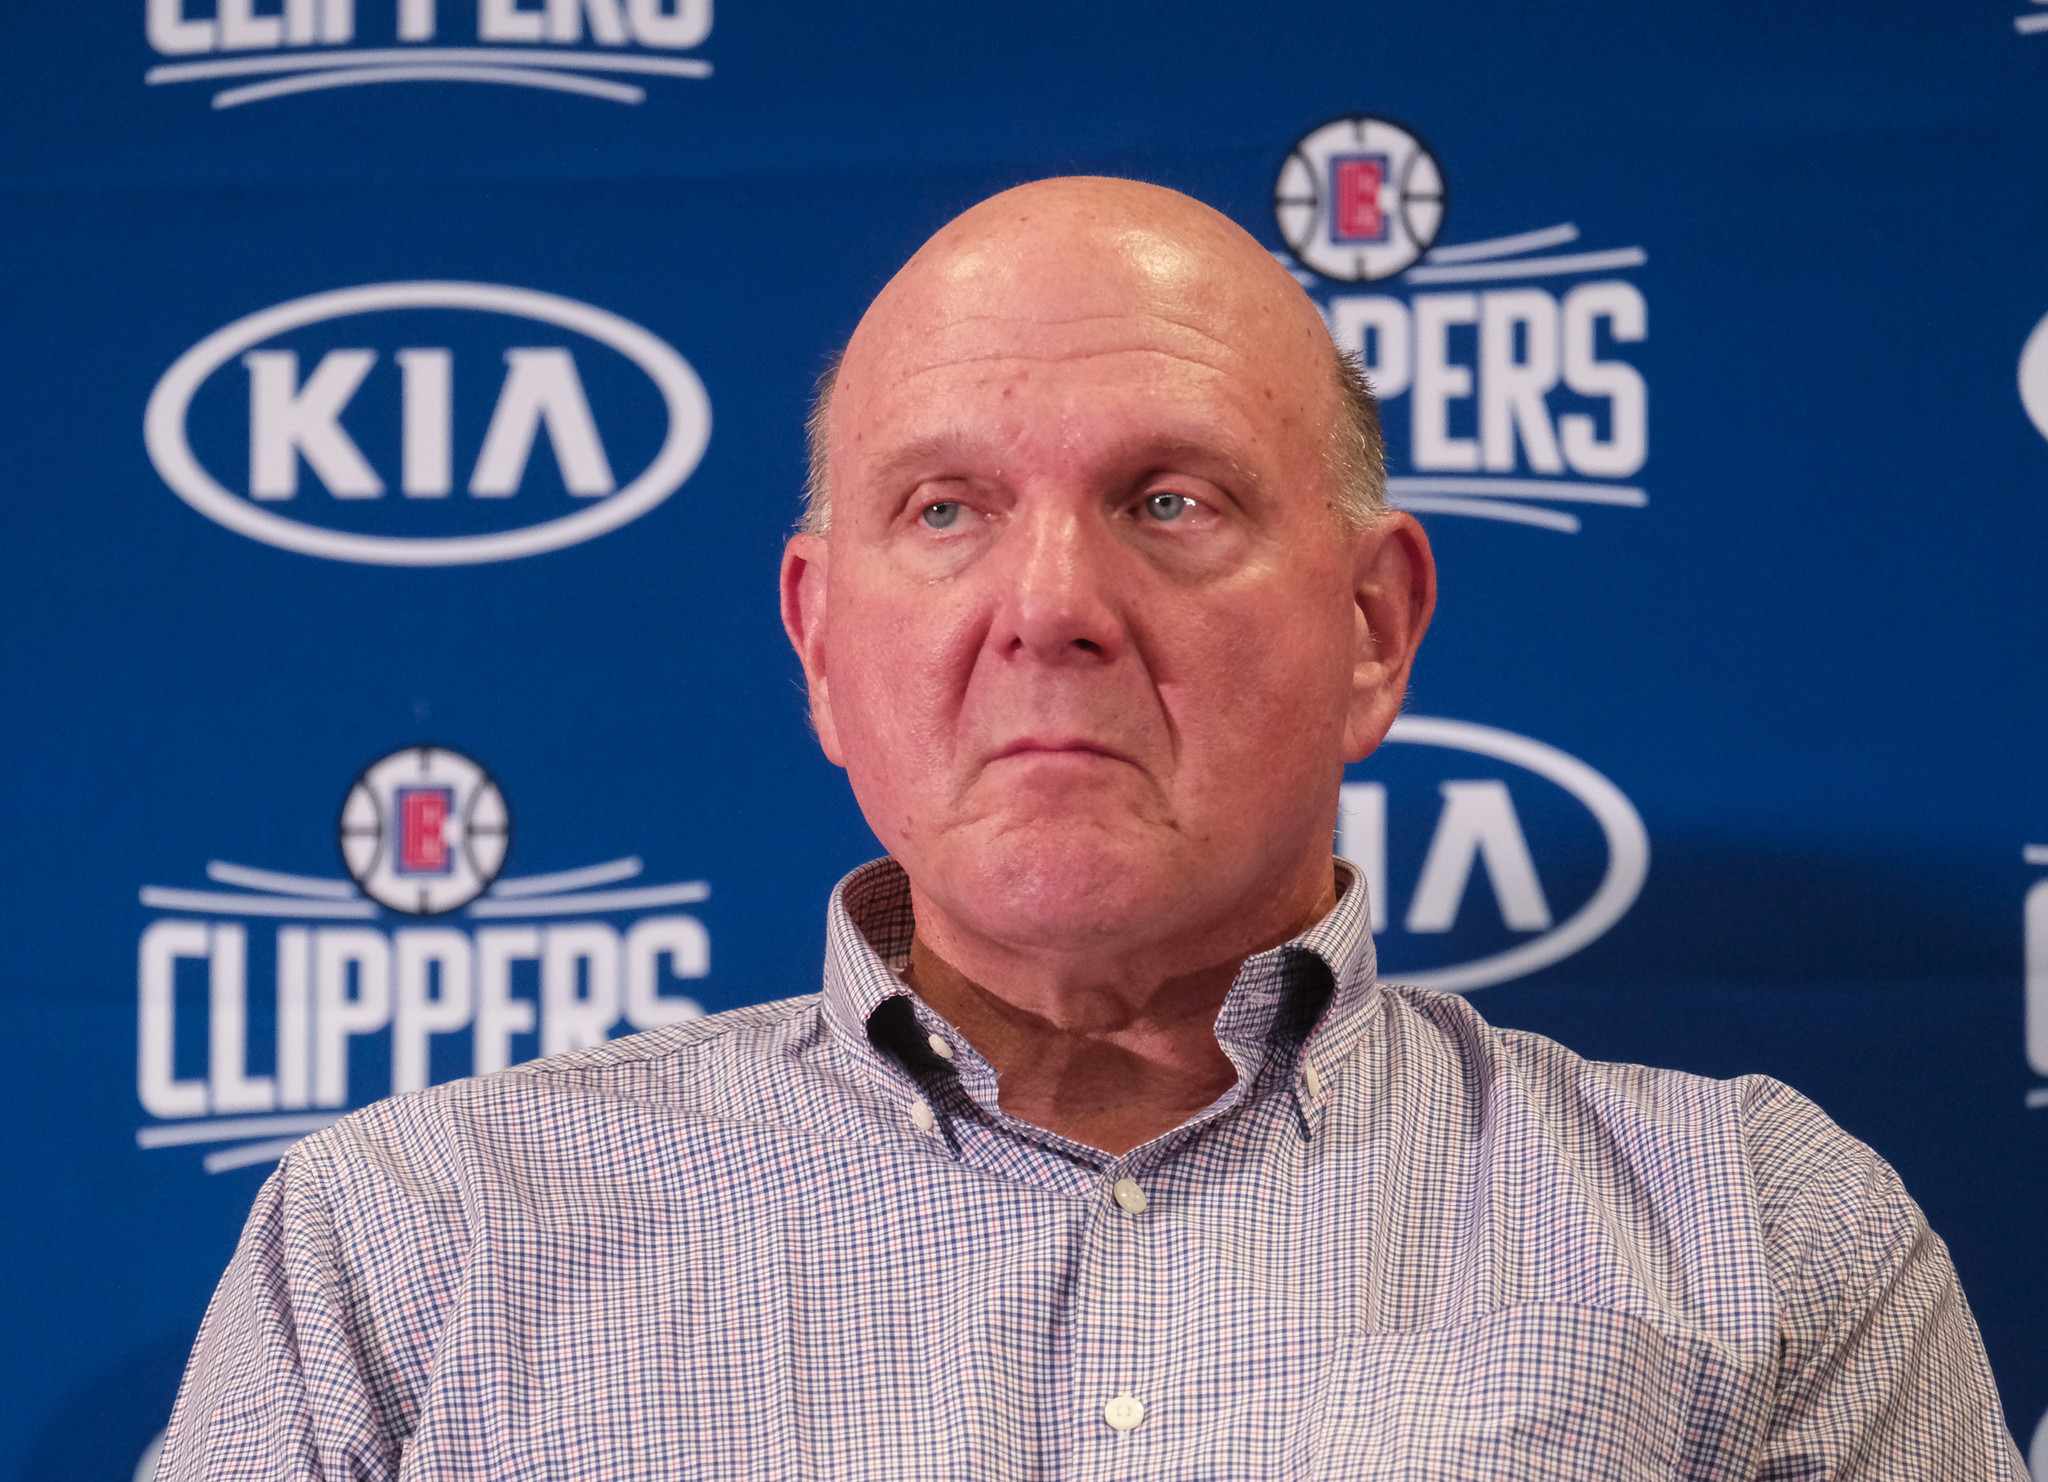 Clippers owner Steve Ballmer in advanced talks to buy The Forum from MSG Company: source